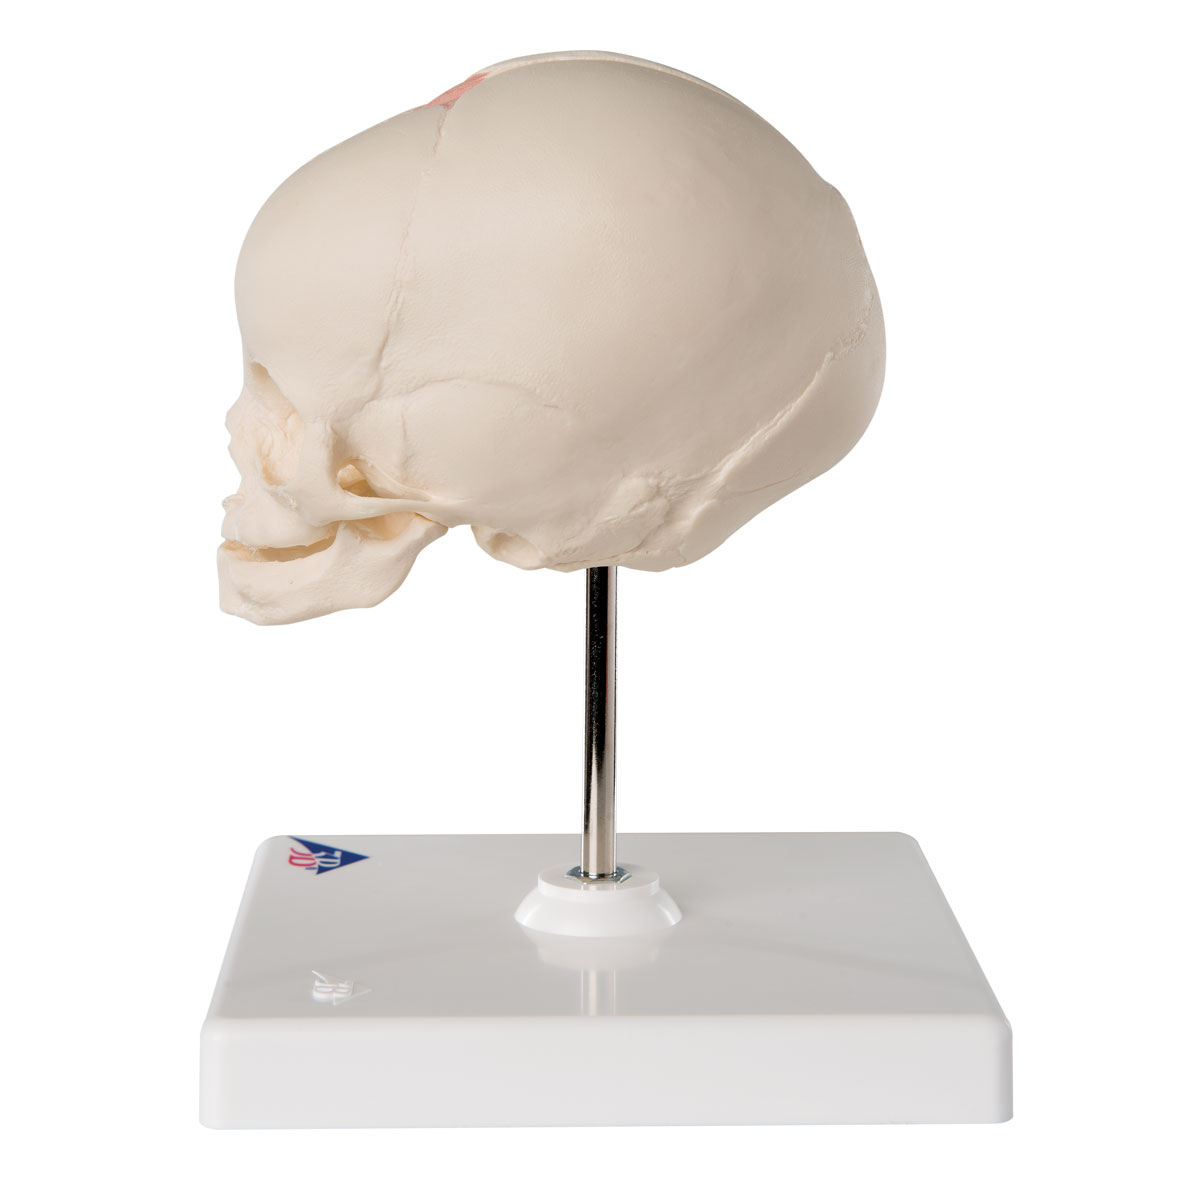 Foetal Skull on Stand A26 – Anatomical Parts & Charts